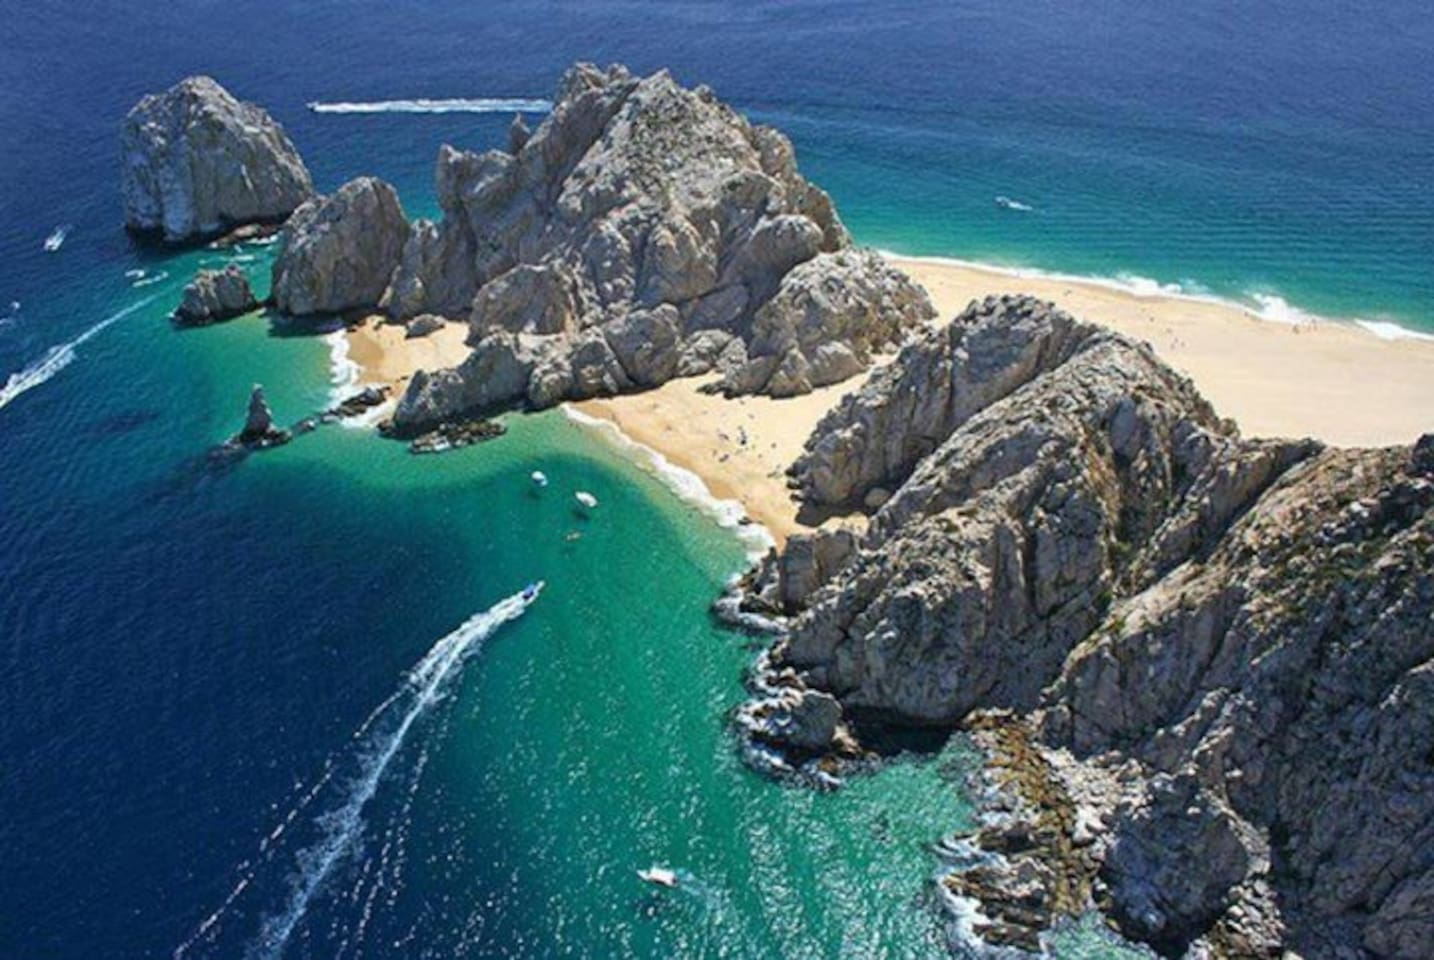 Lands End, the Arch and Lovers Beach are just a beach away from Terrasol